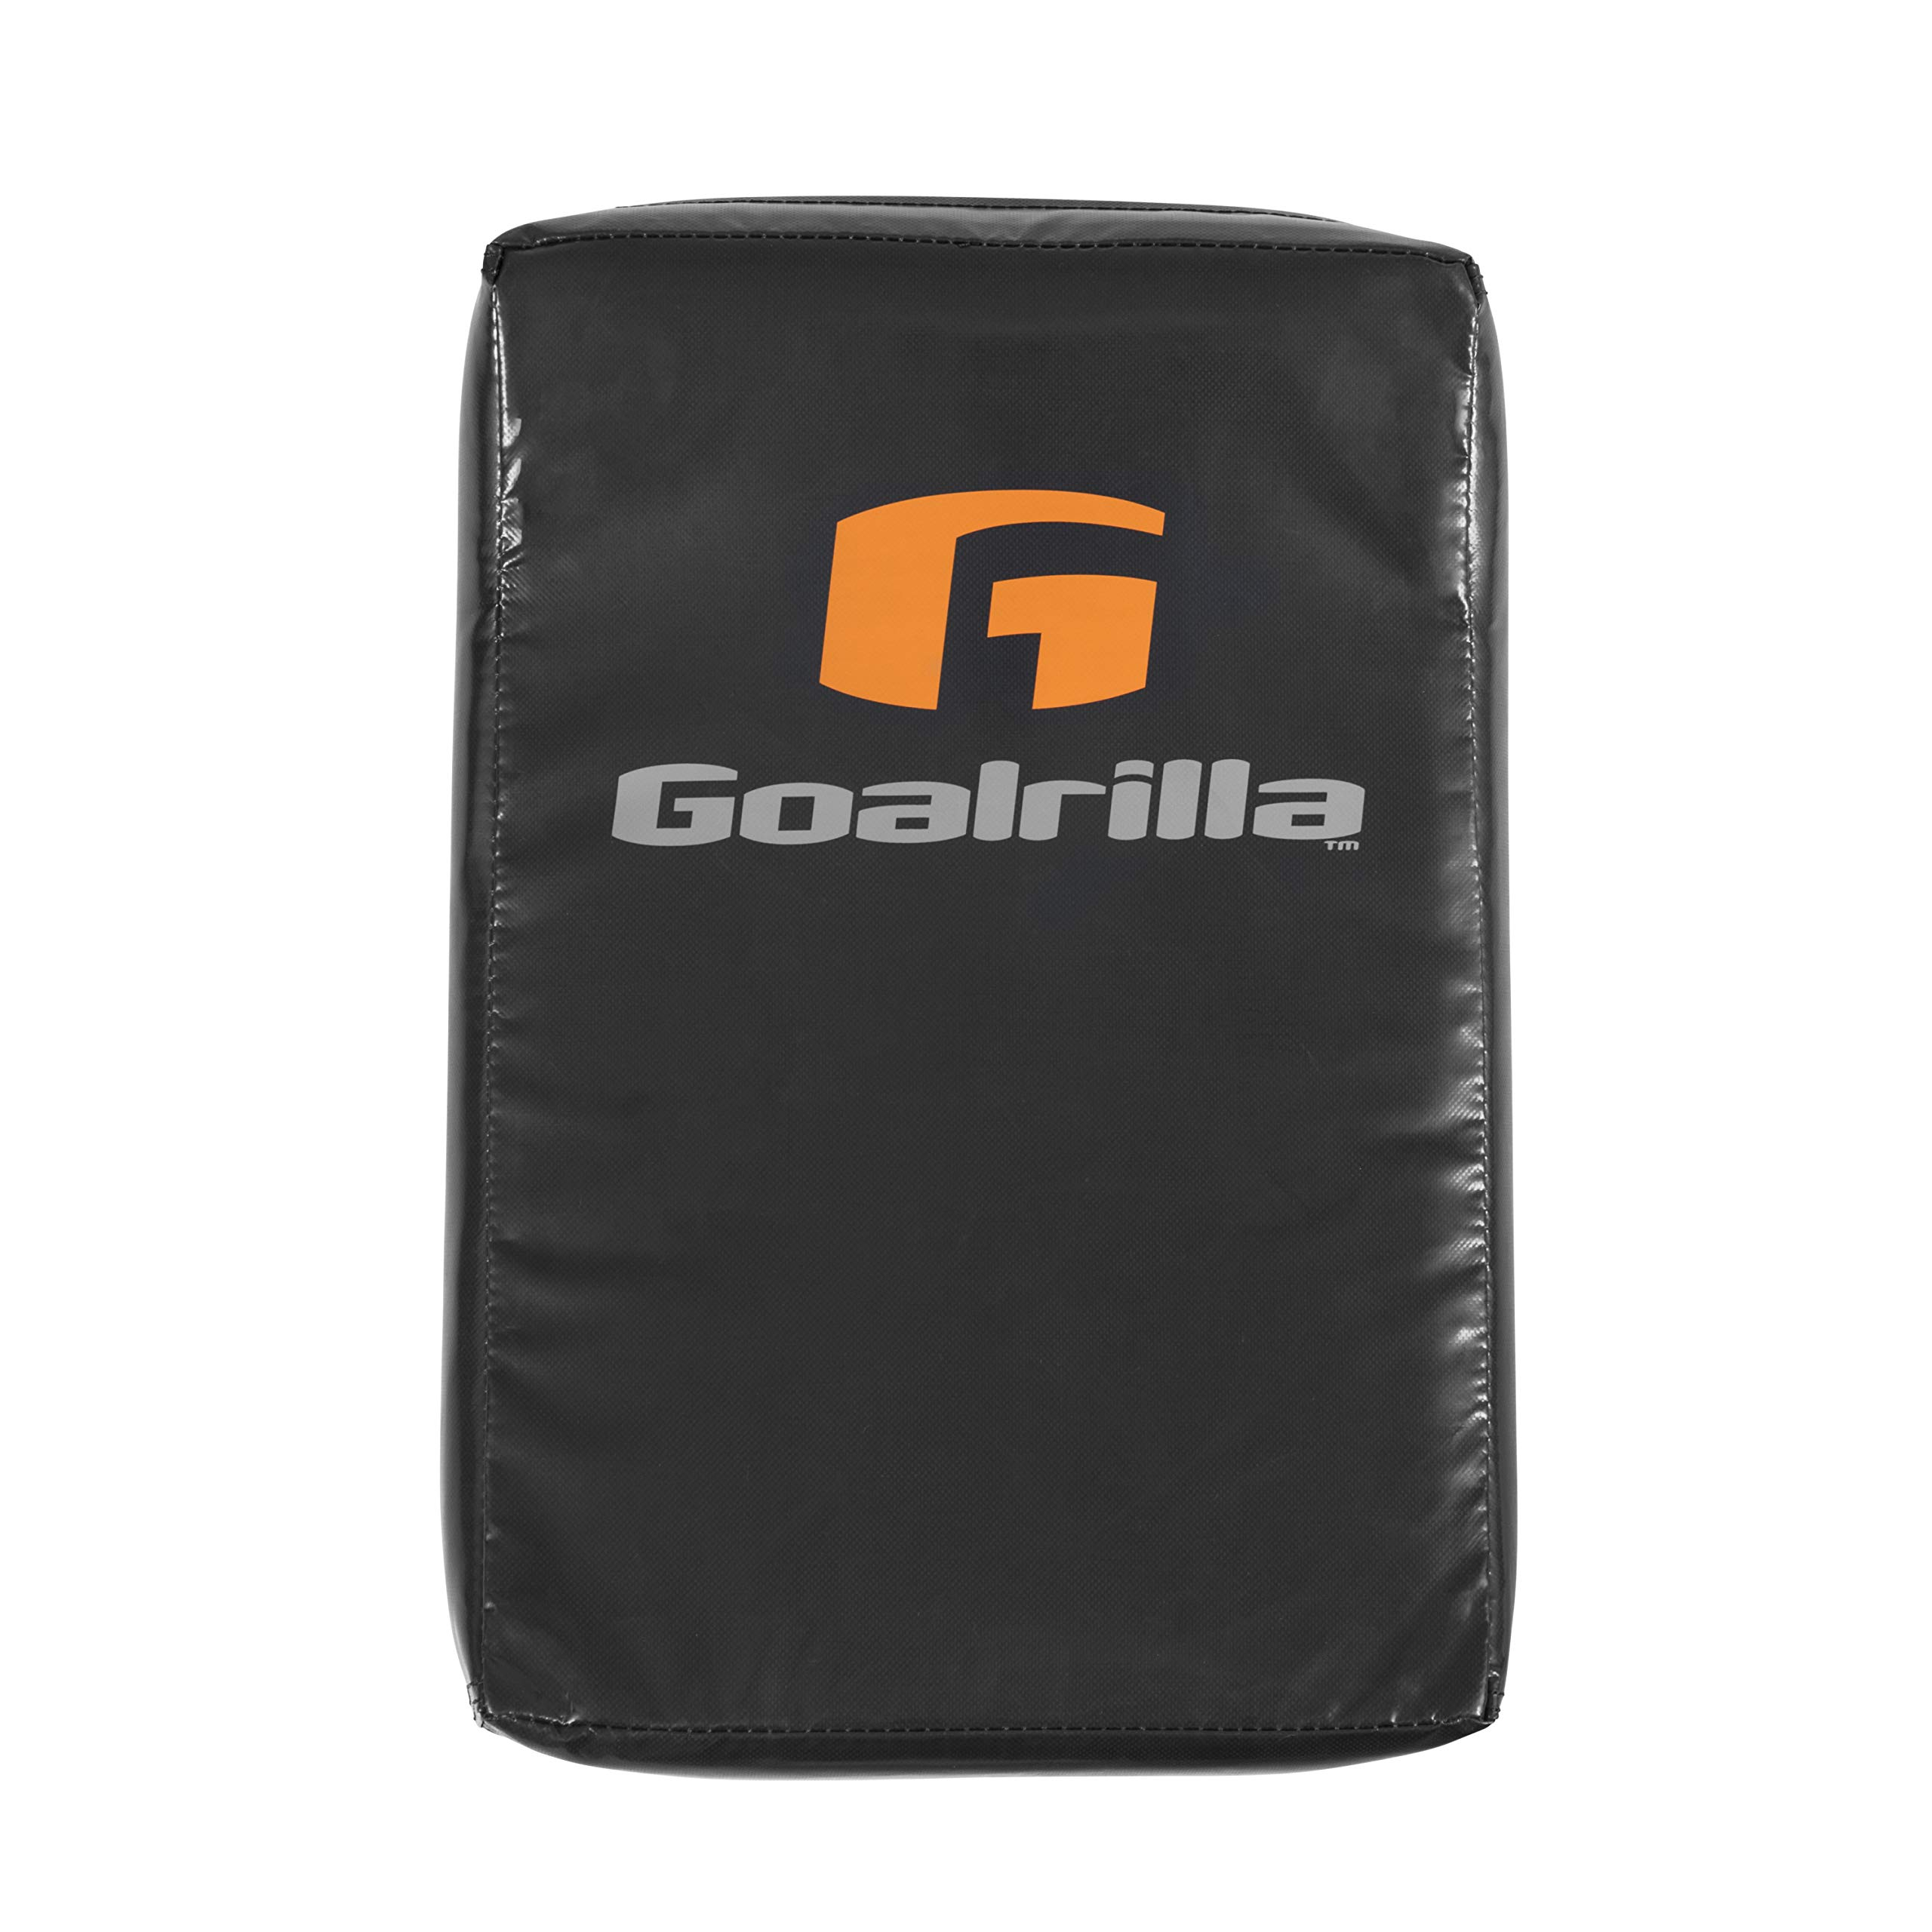 Goalrilla Football Blocking Dummy with Heavy-Duty Handles, Durable for Football, Basketball, MMA & Sports Training by Goalrilla